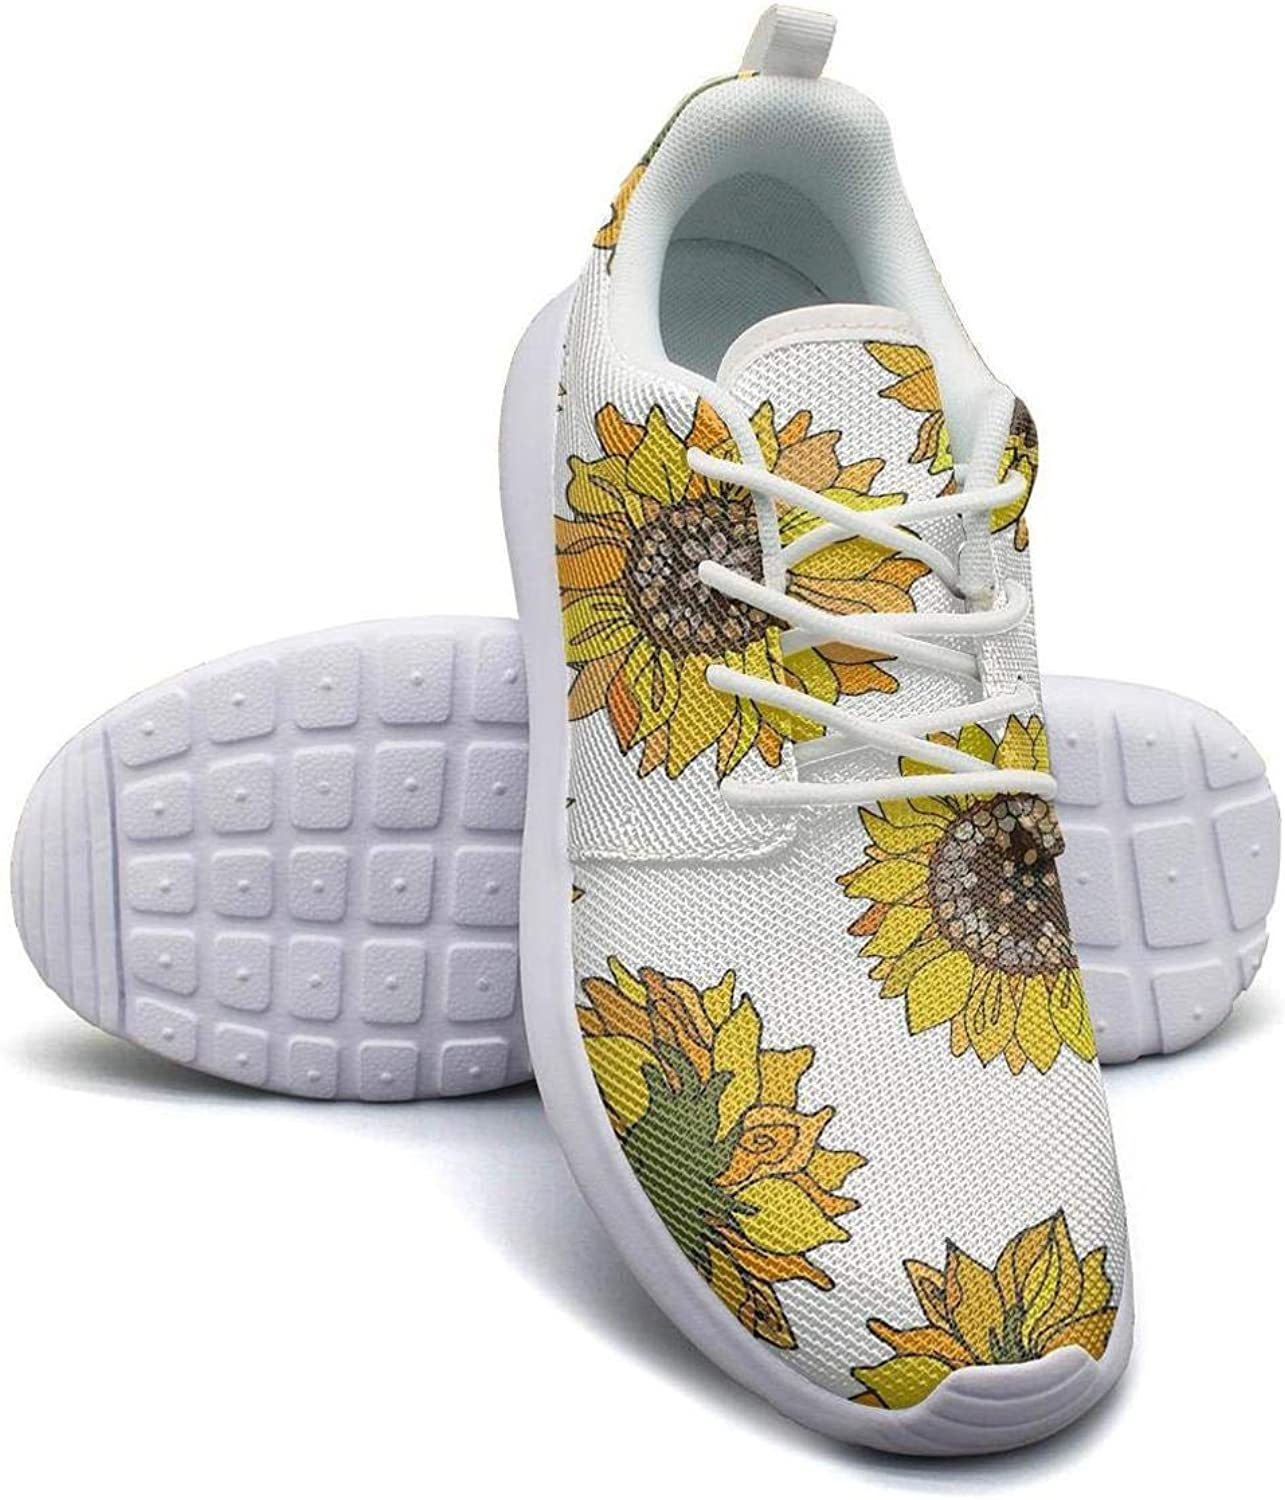 Hobart dfgrwe Flower and Miniature Schnauzer Dog Purple Lady Canvas Casual shoes Care Classic Running shoes